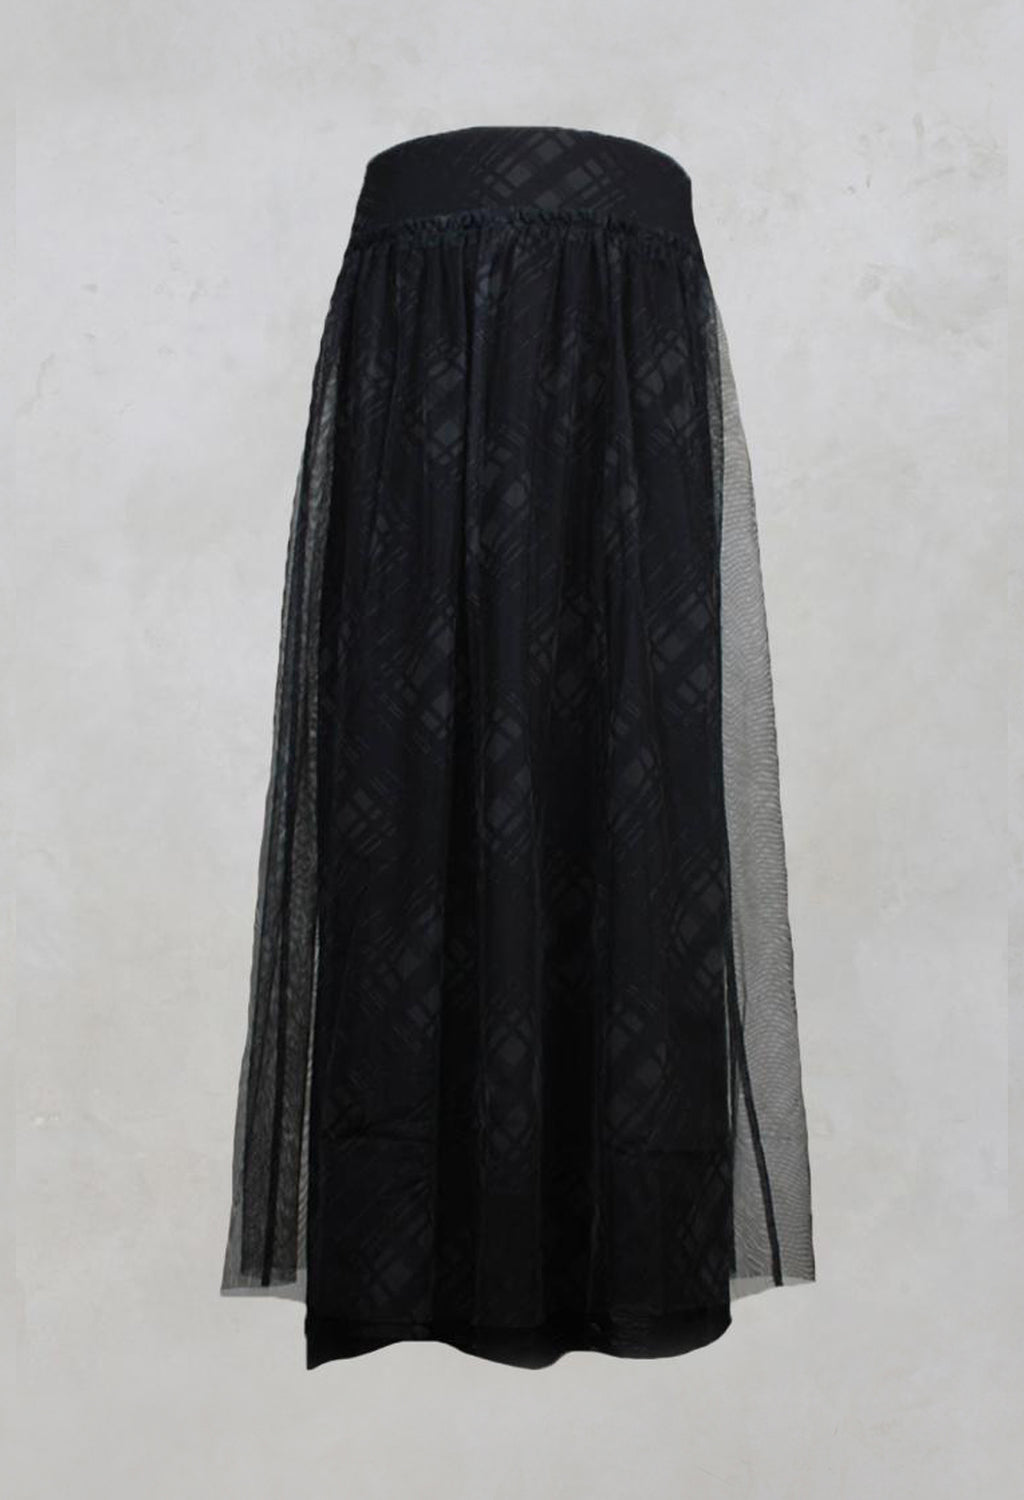 Fine Jersey Skirt with Net Overlay in inox